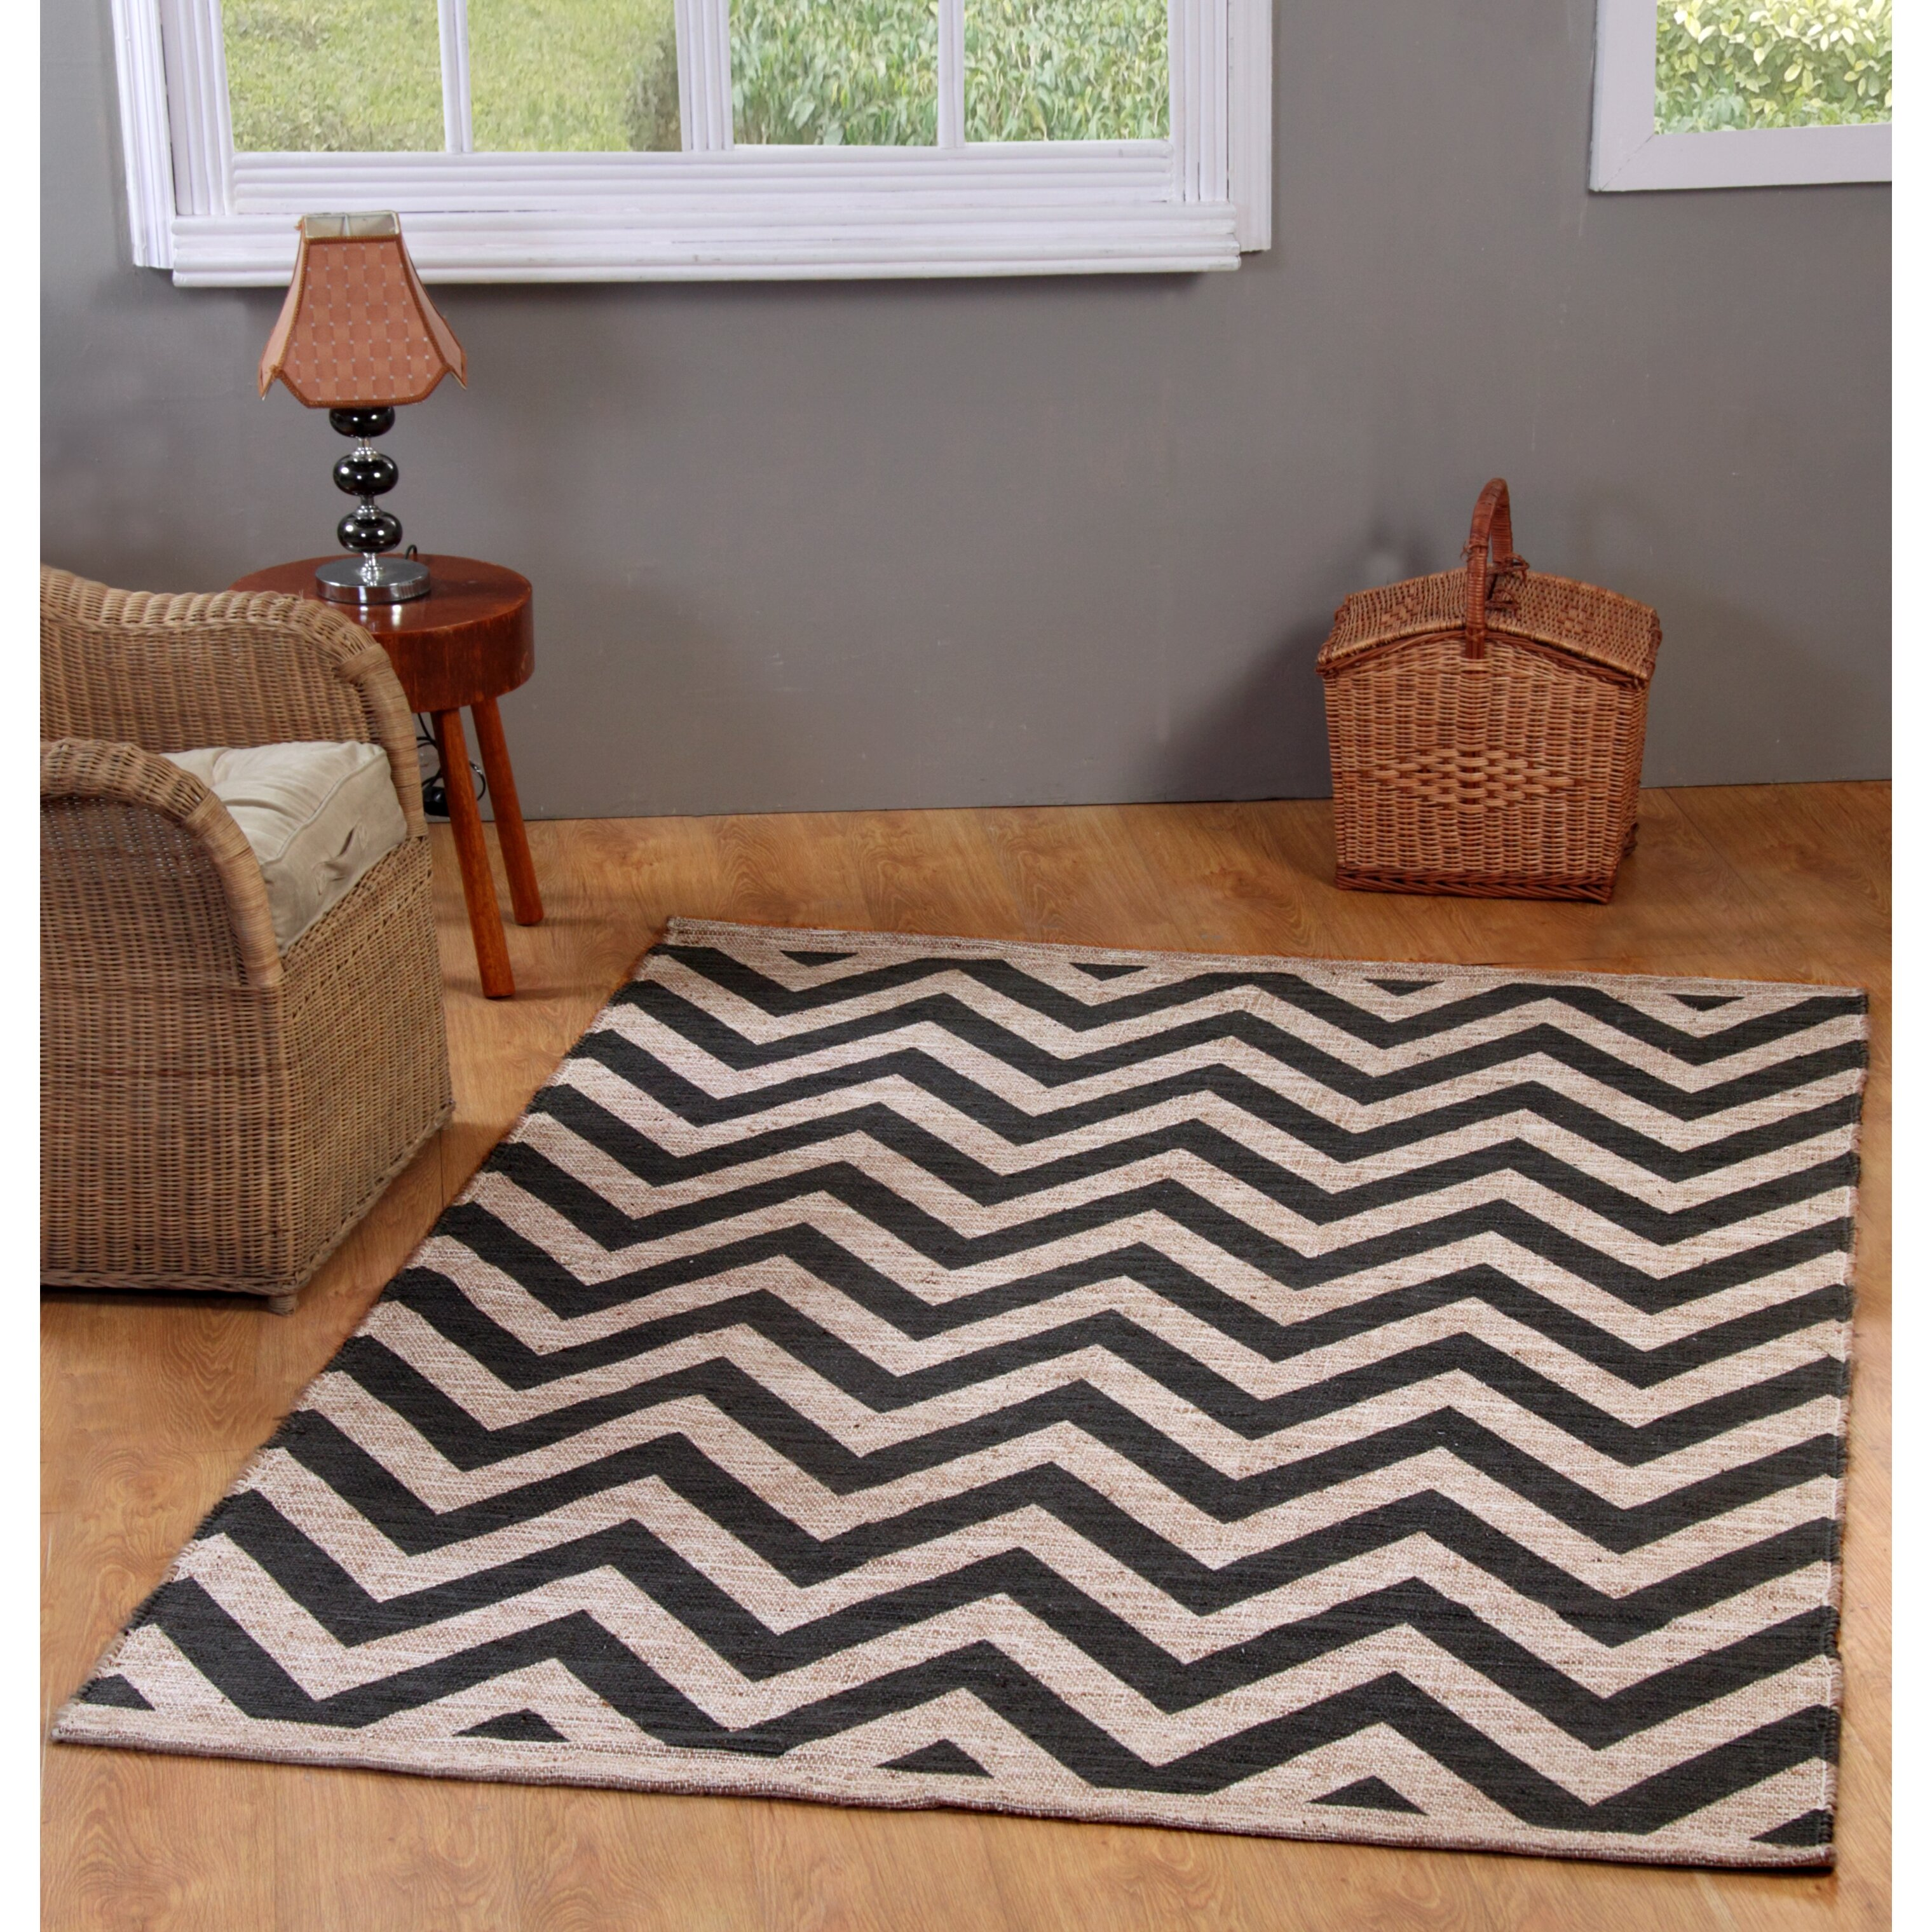 Chevron Accent Rug: Chesapeake Printed Grey Chevron Outdoor Area Rug & Reviews